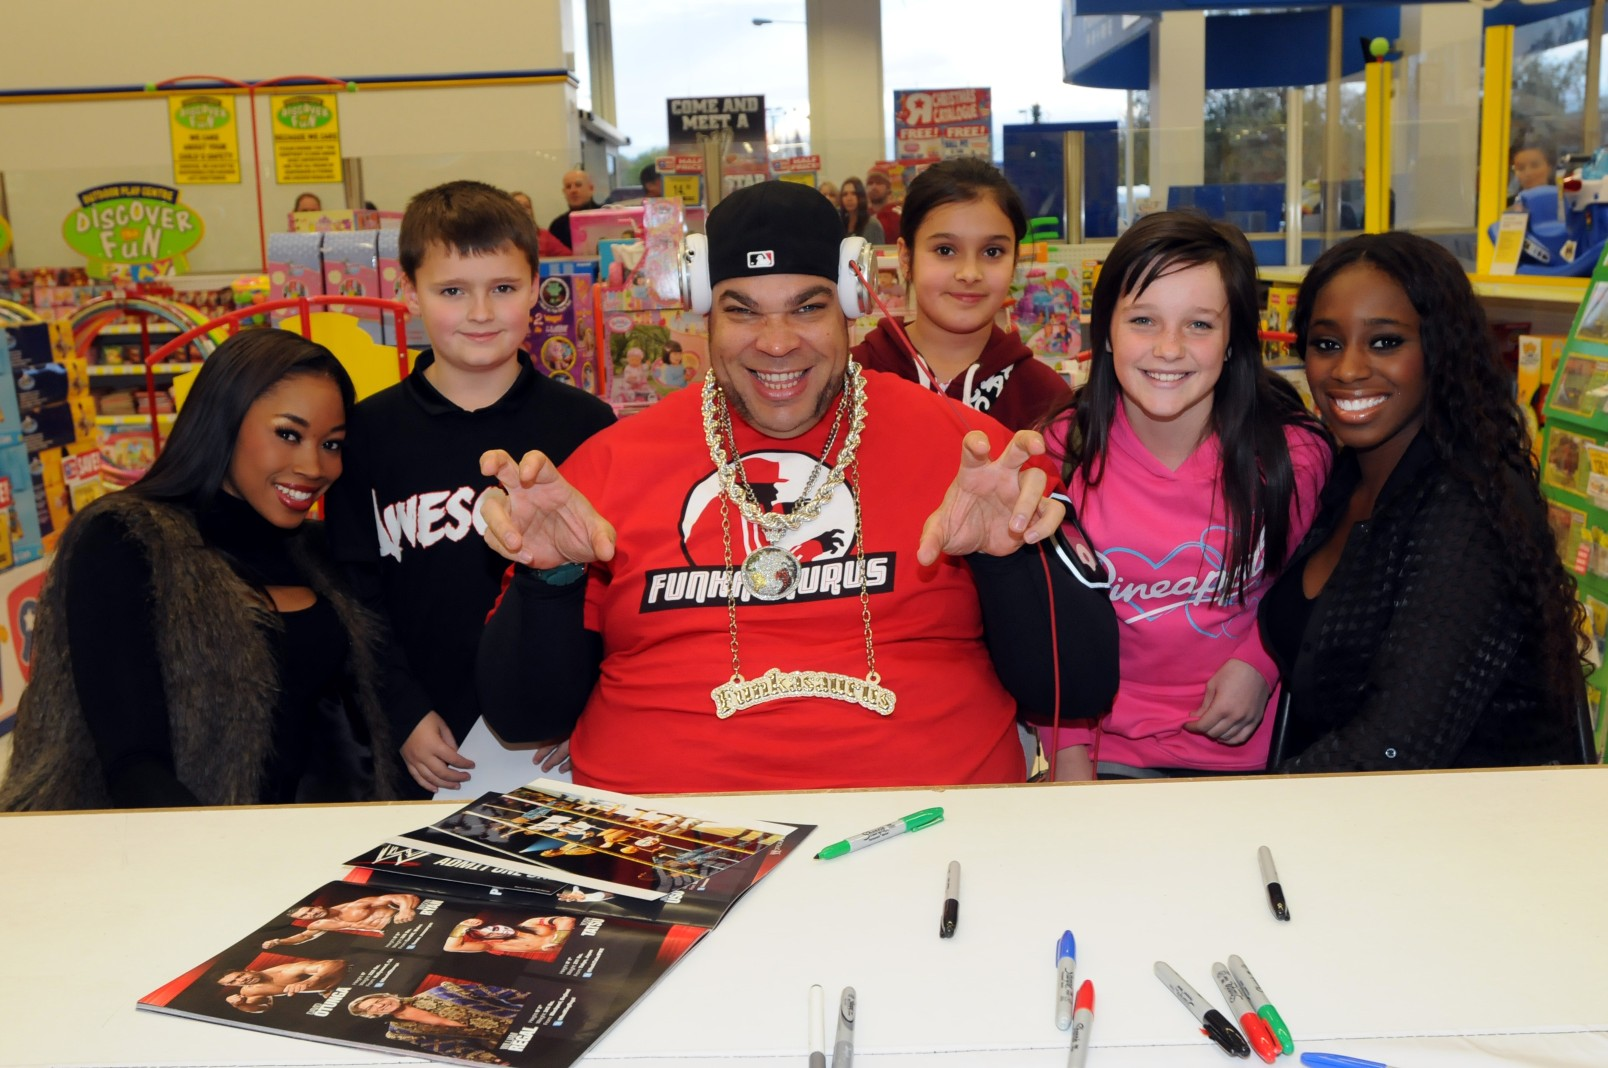 Wrestling star hits town